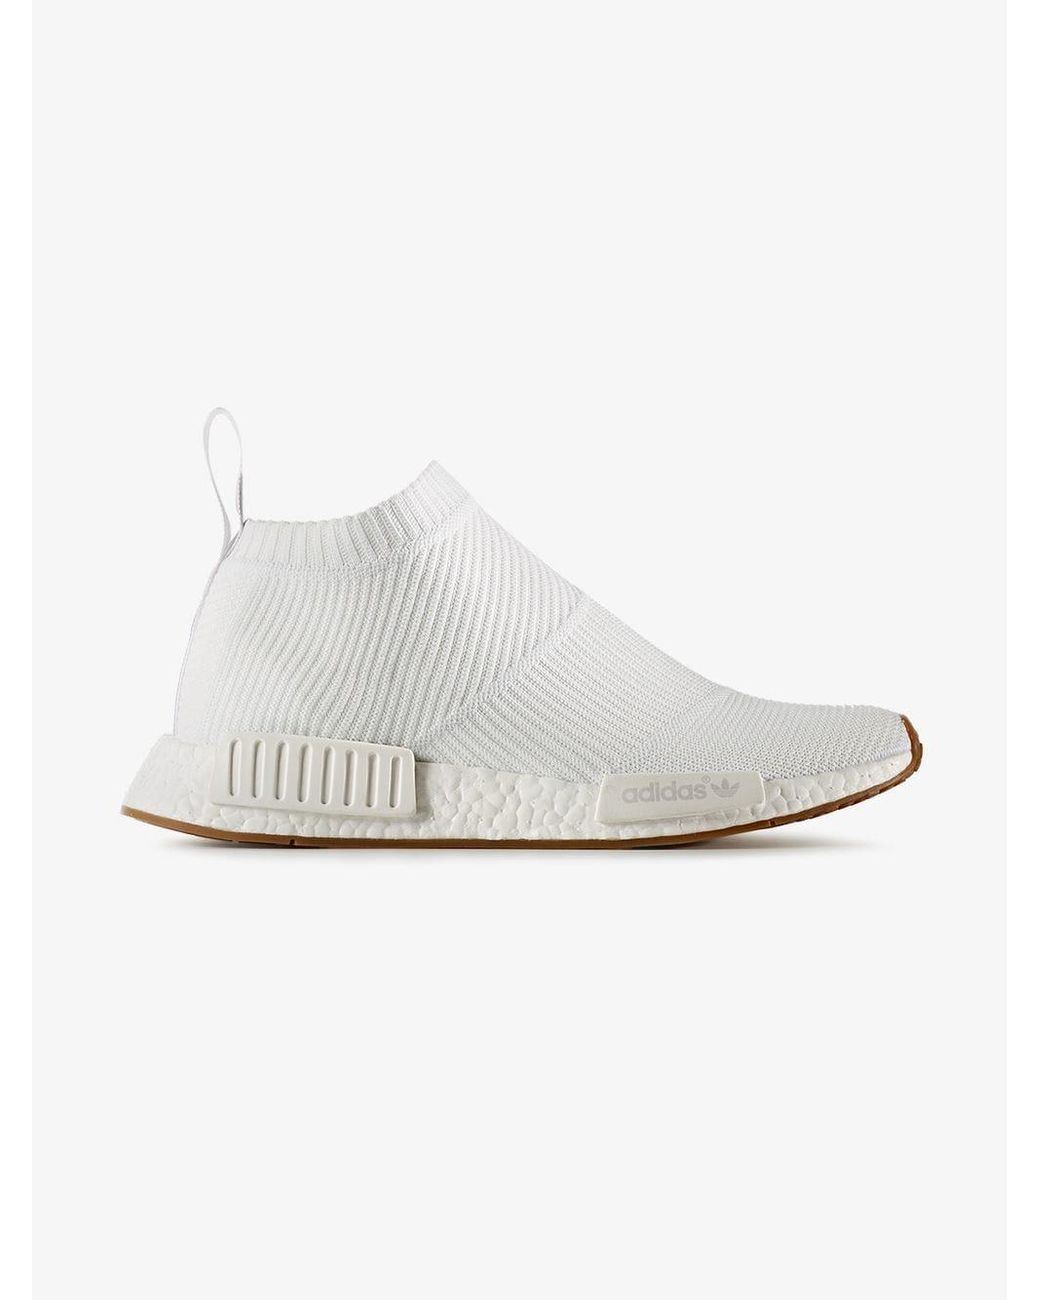 a598feaa7 Lyst - adidas Originals Nmd cs1 Gtx Pk Sneakers in White for Men